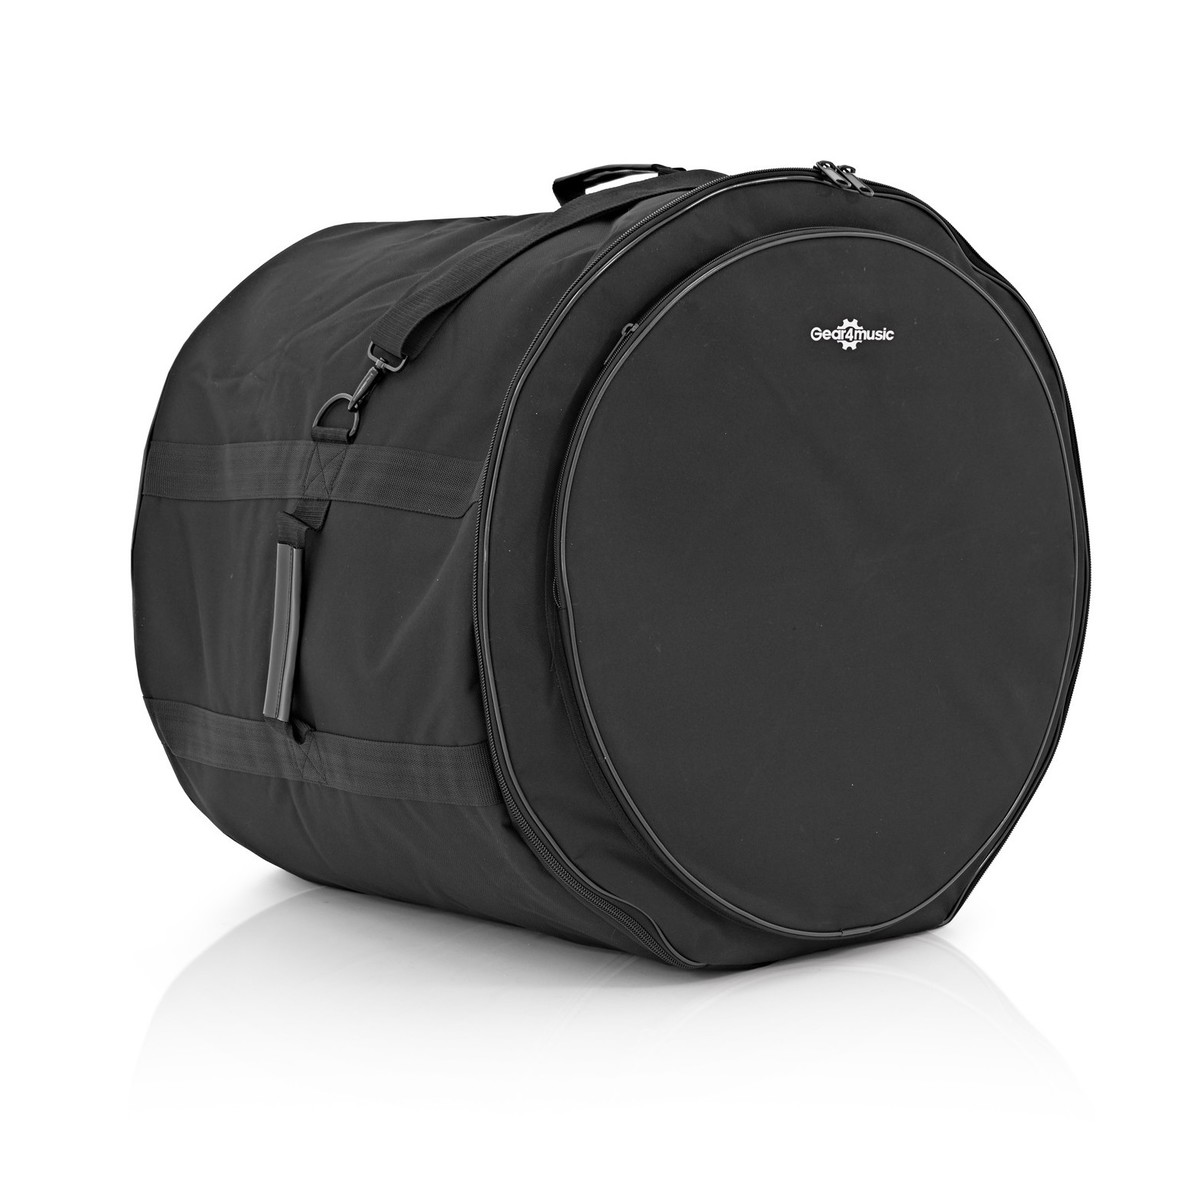 "22"" Padded Bass Drum Bag by Gear4music"